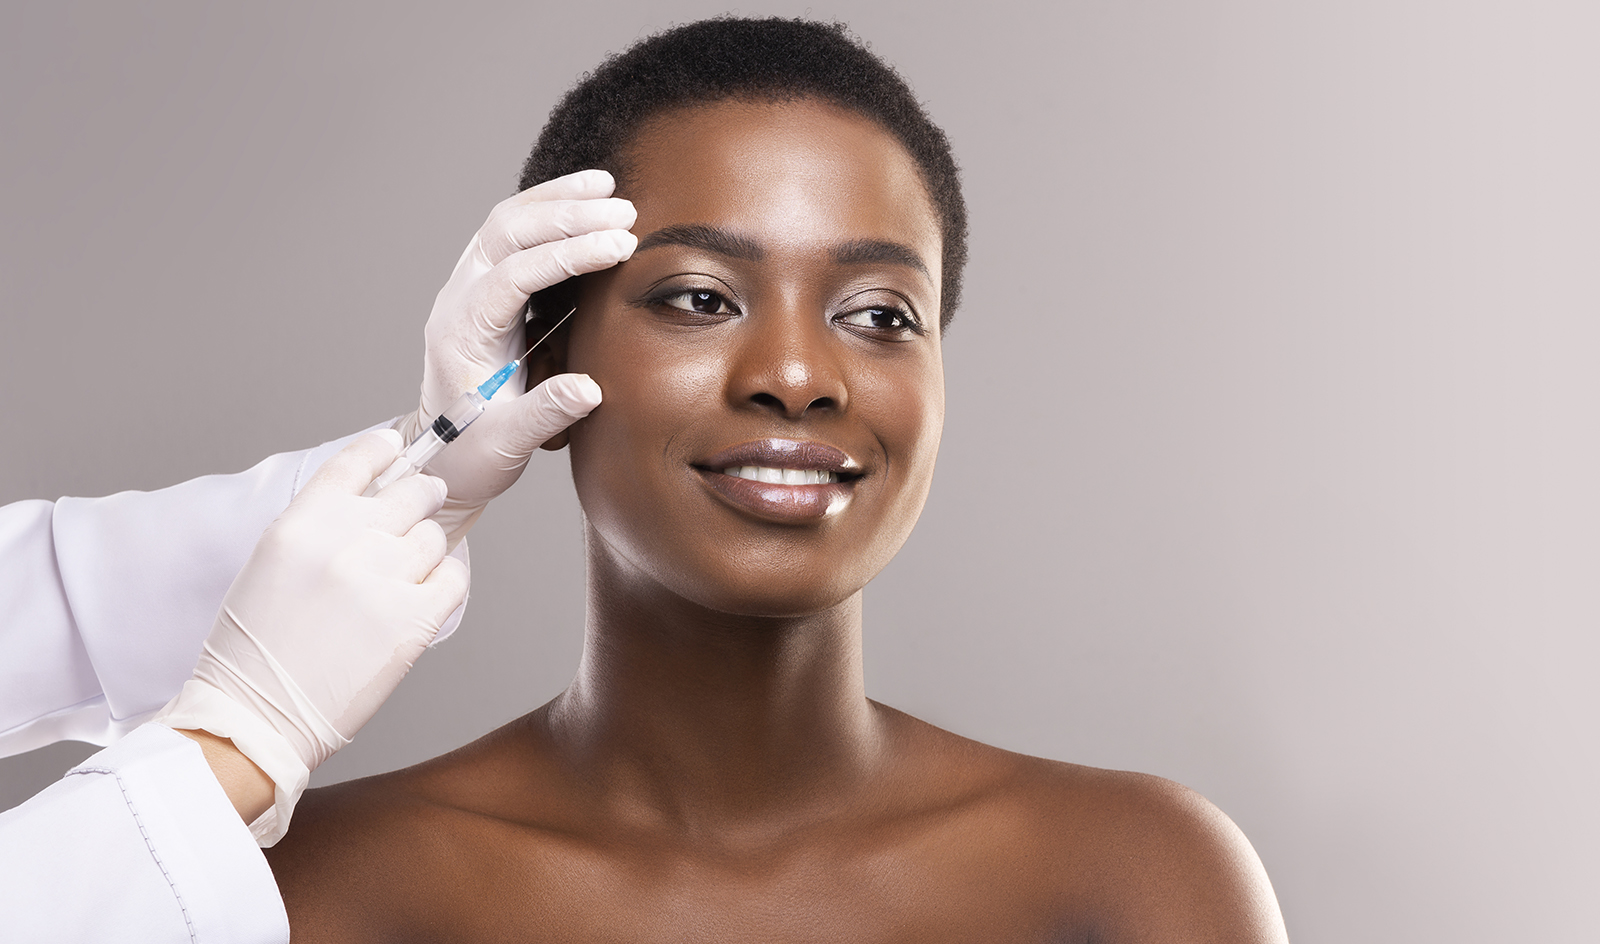 purifying-skin-solutions-for-october-skin-injection-woman-with-beautiful-skin